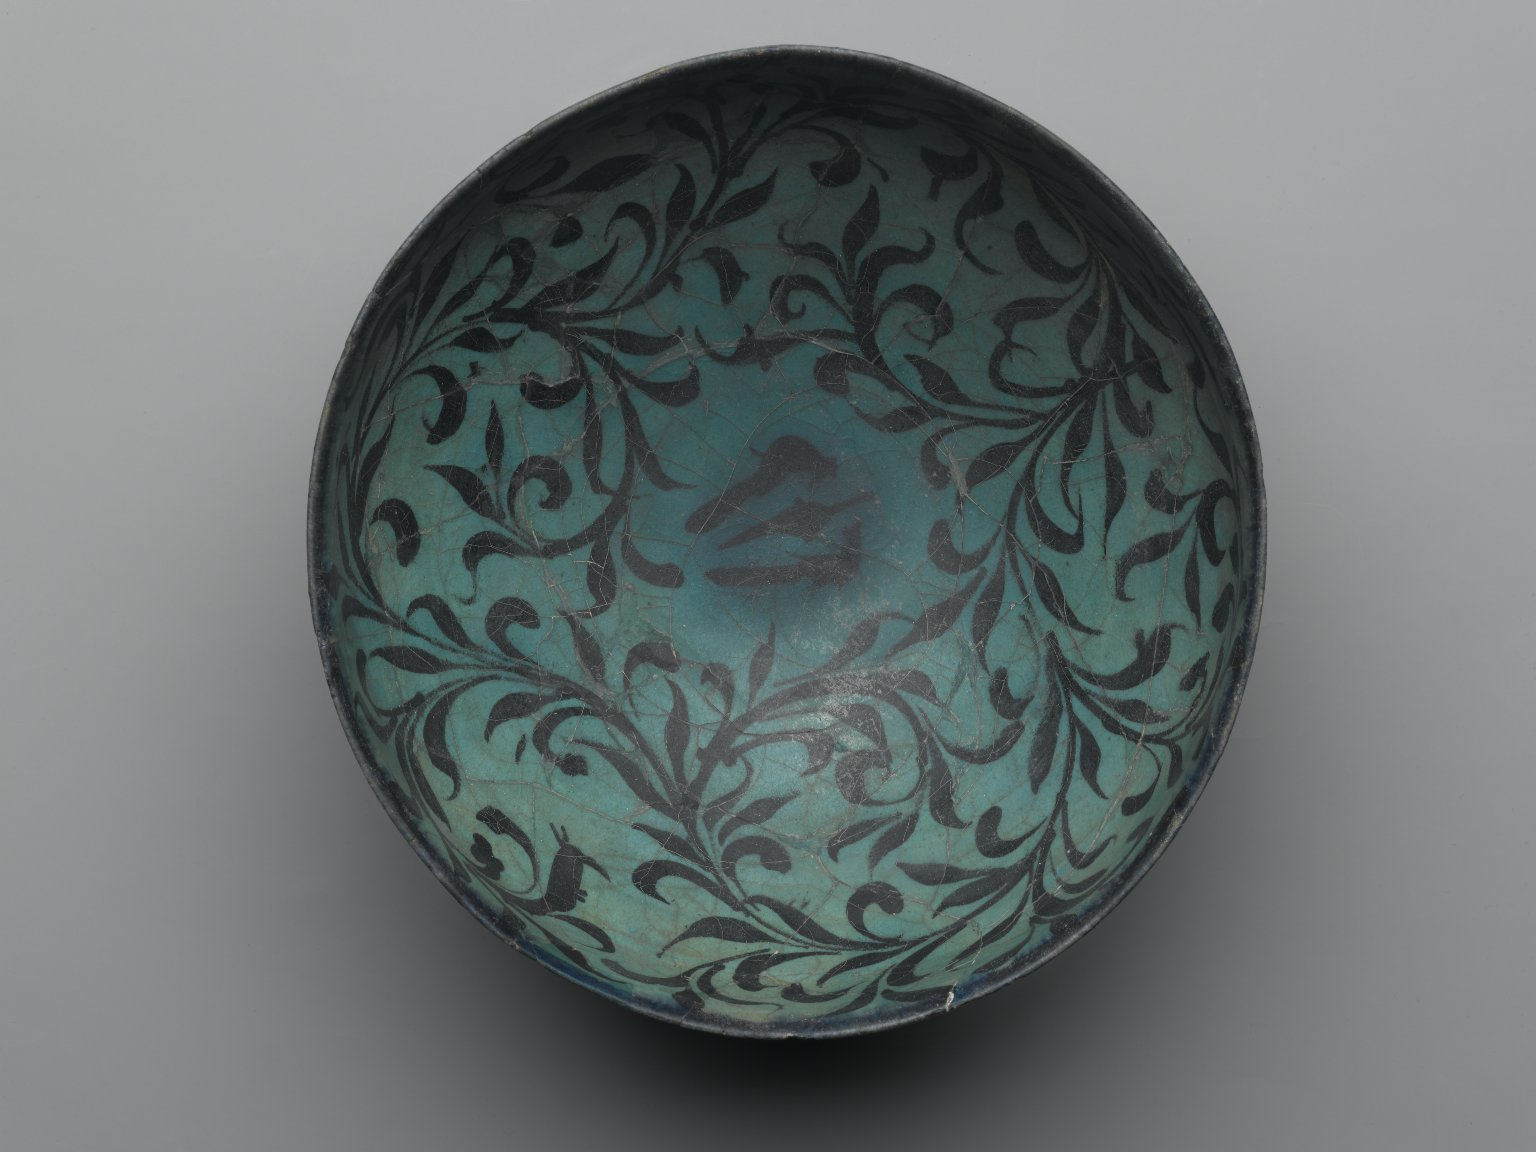 Brooklyn Museum: Bowl with Water-Weed Motif